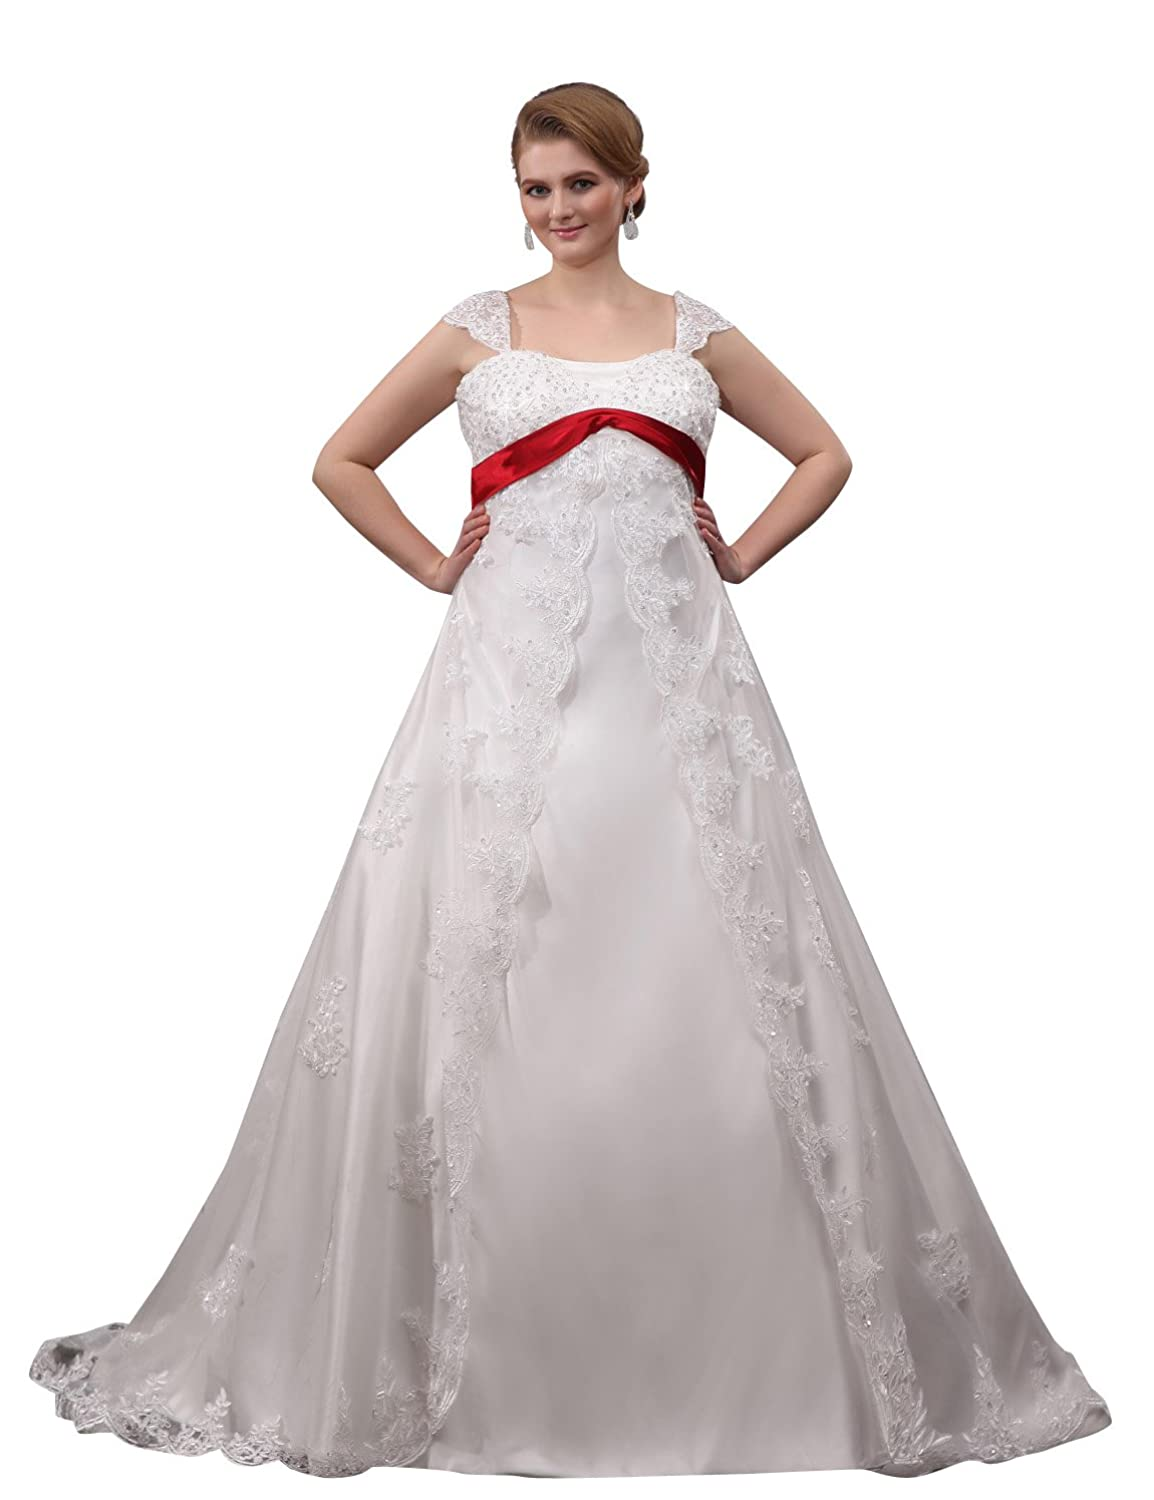 jolly-bridal-lace-beading-bridal-gown-plus-size